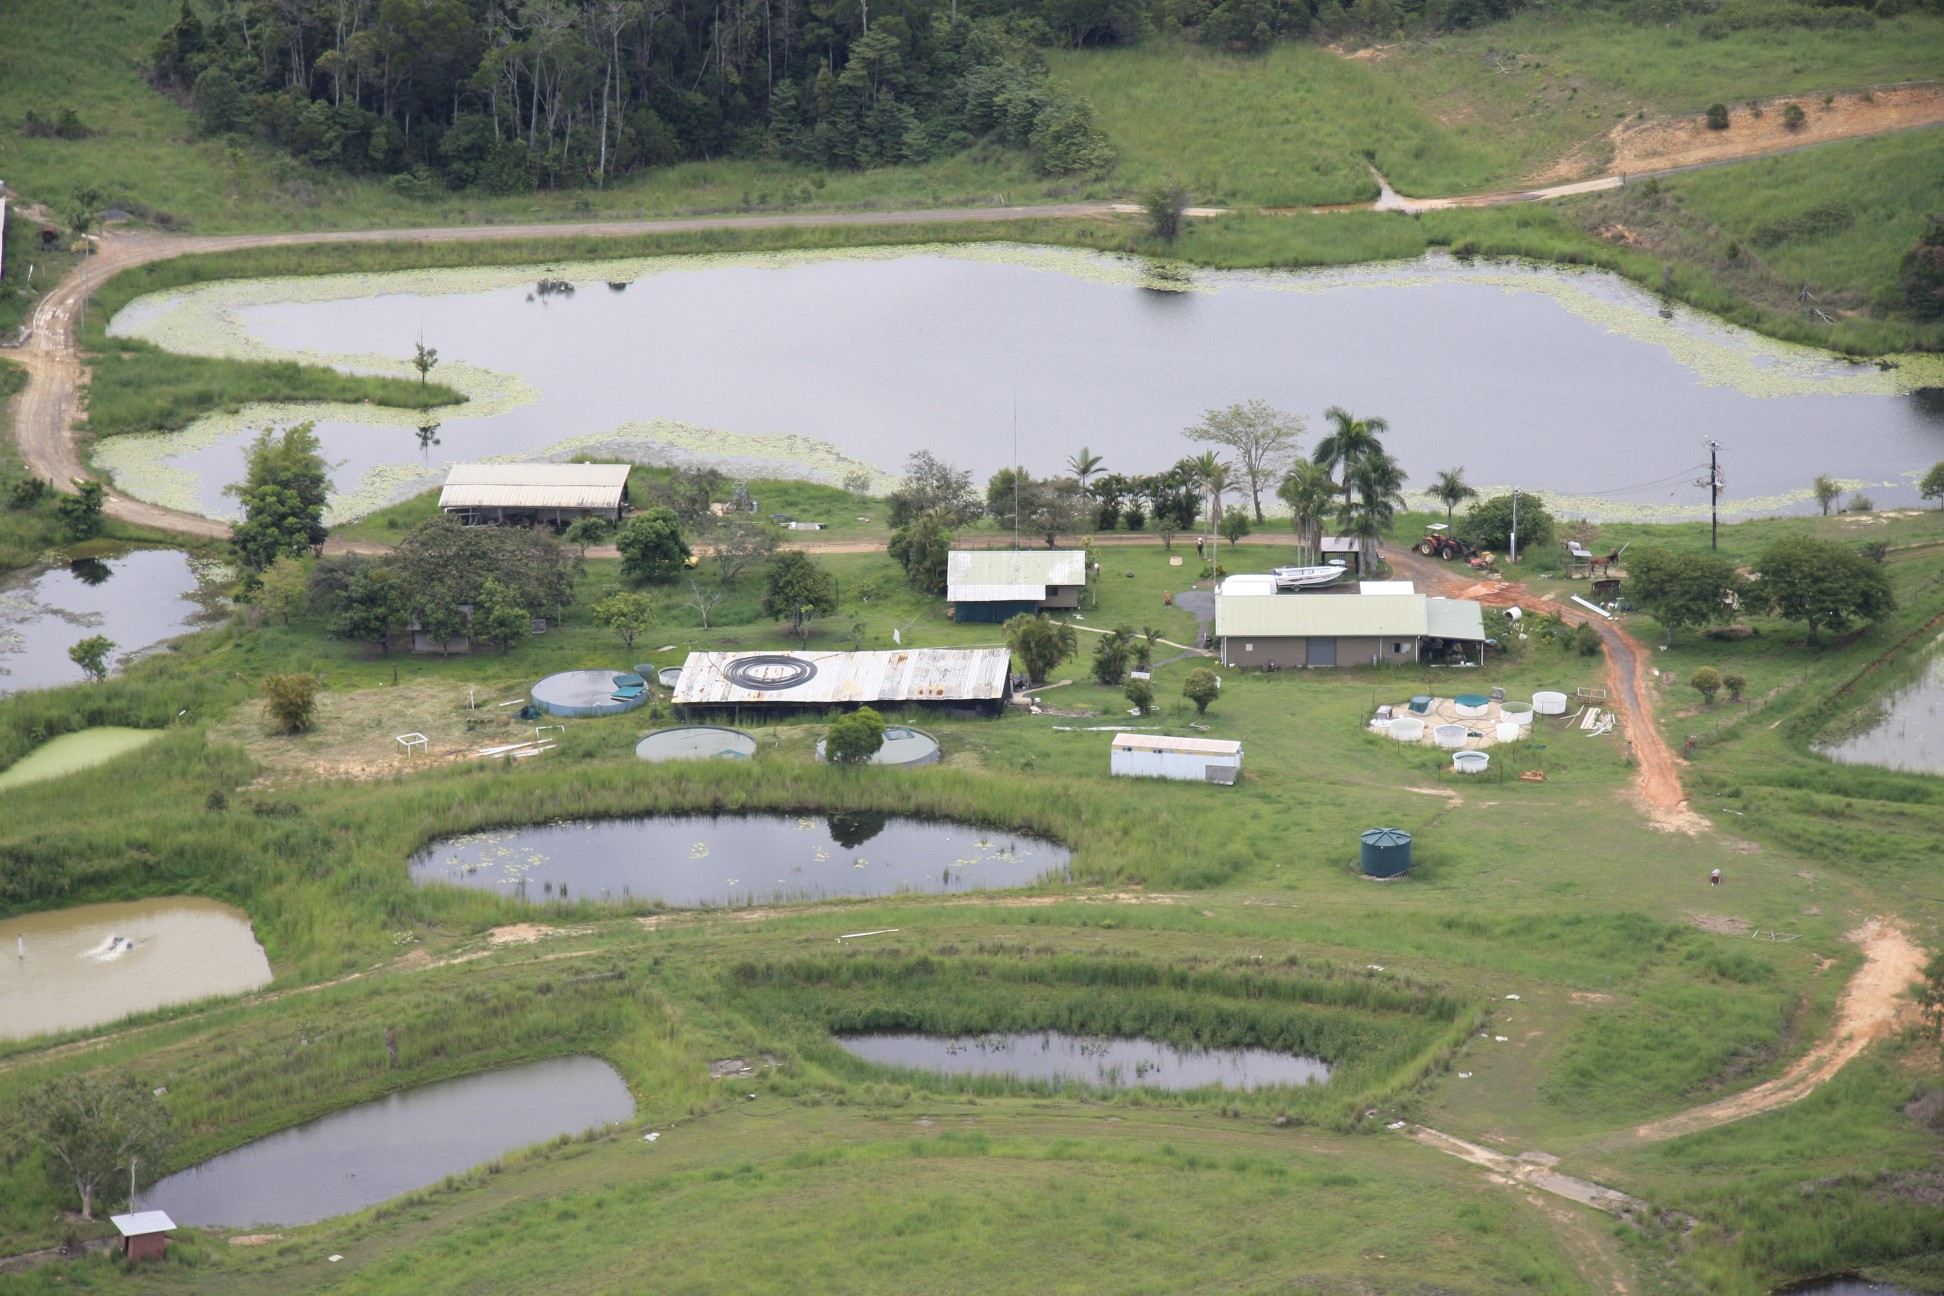 property for sale karunda queensland qld fish farm